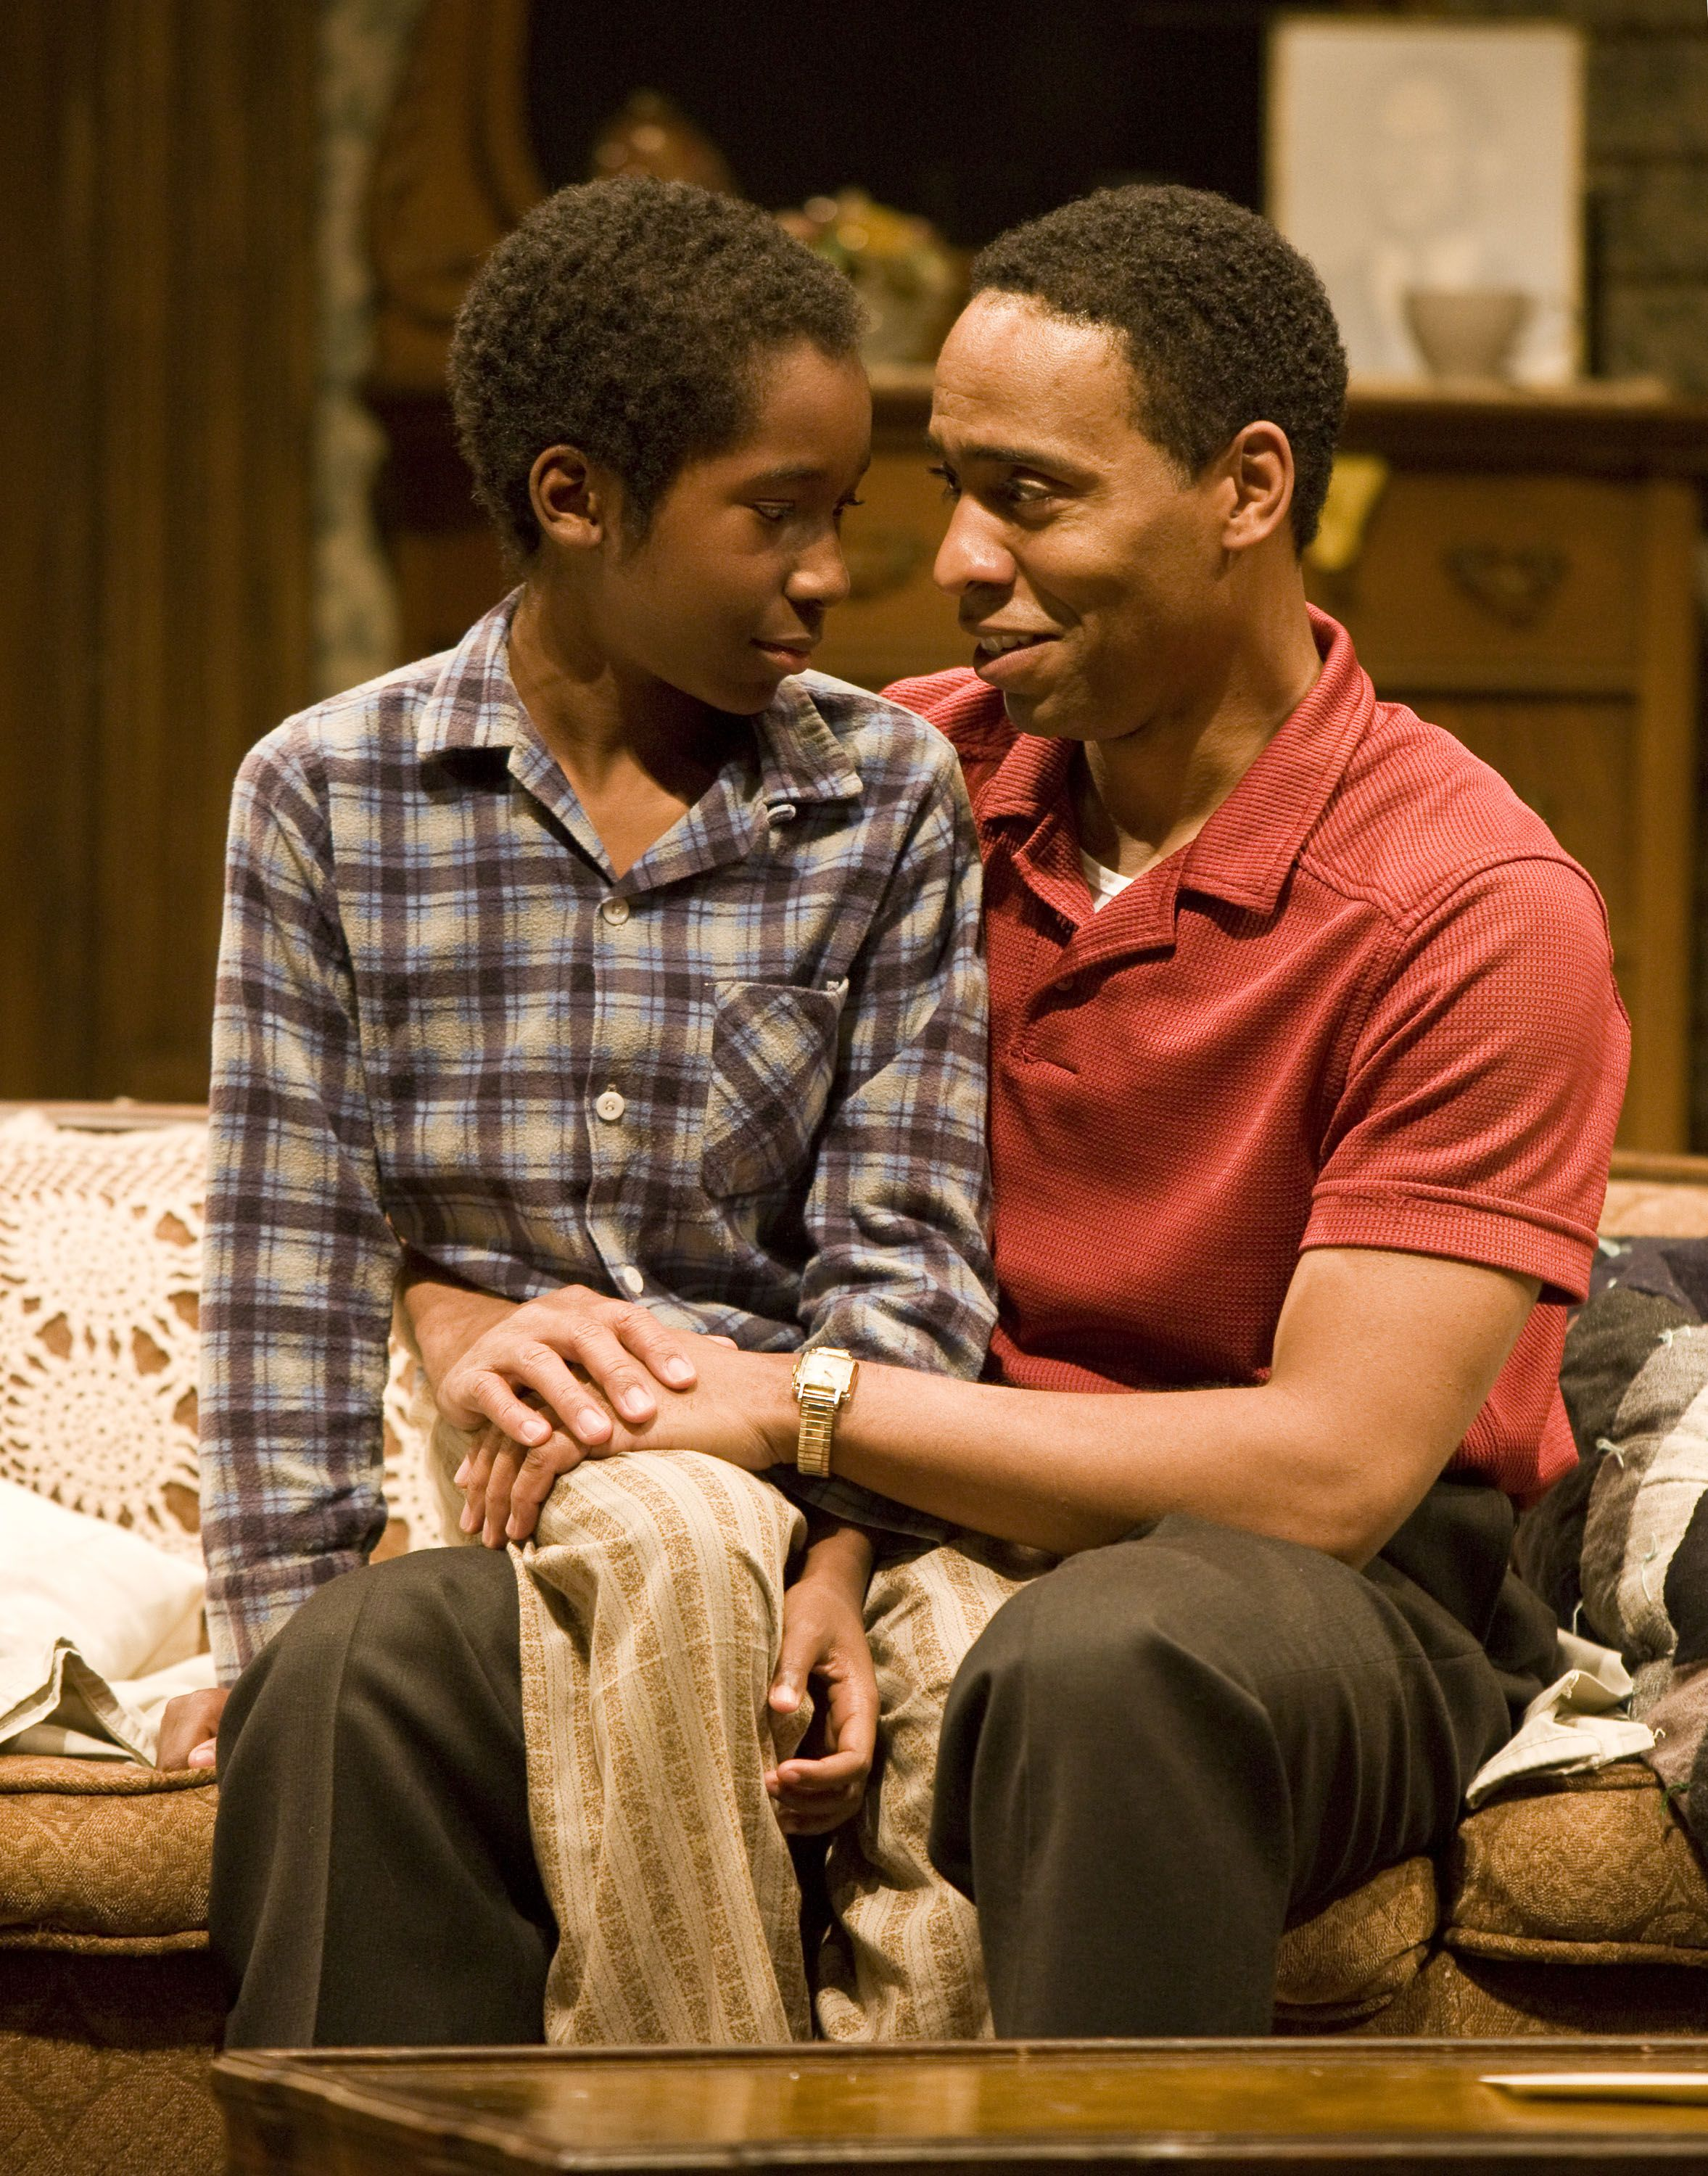 A raisin in the sun google search a raisin in the sun by a raisin in the sun google search sciox Images